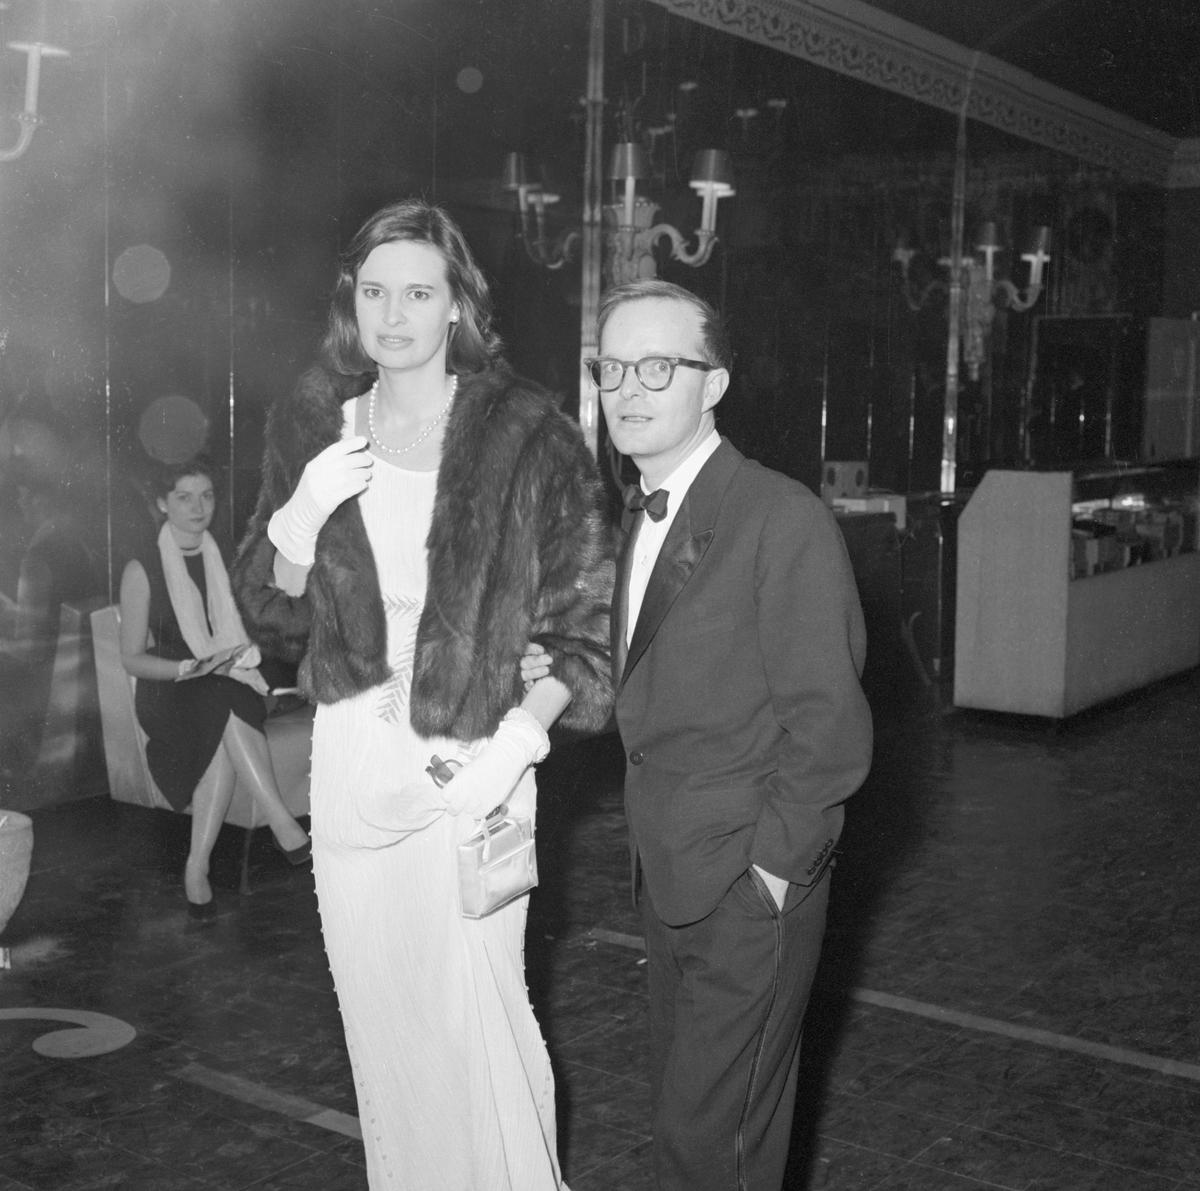 Writer Truman Capote and Gloria Vanderbilt Lumet arrive at New York's 54th Street Theatre for the opening performance of